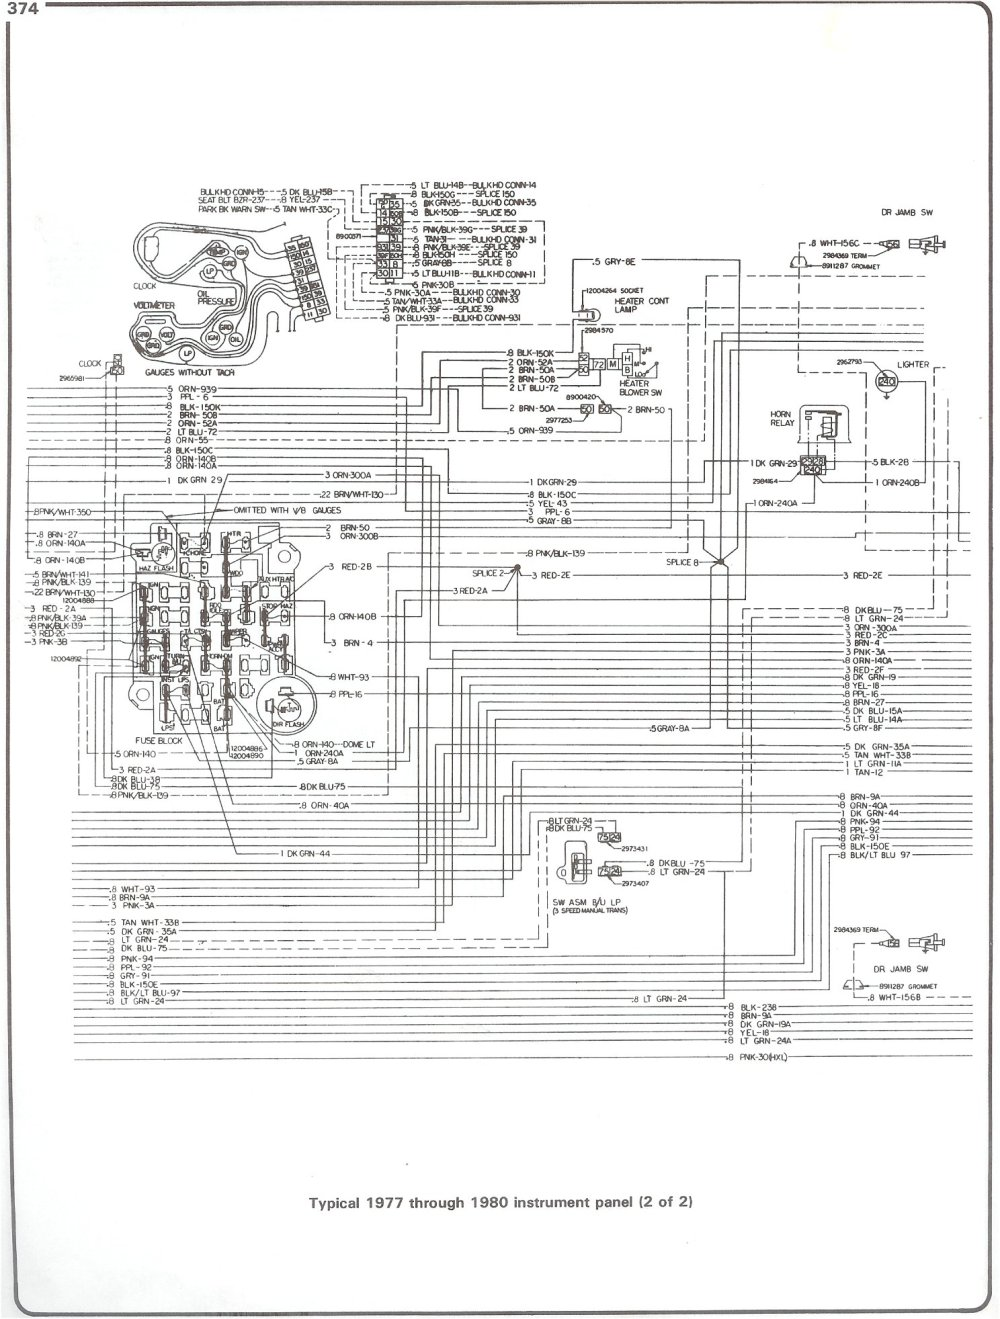 medium resolution of 1986 chevy k10 wiring diagram wiring diagram note 1986 chevy k10 wiring diagram of truck wiring